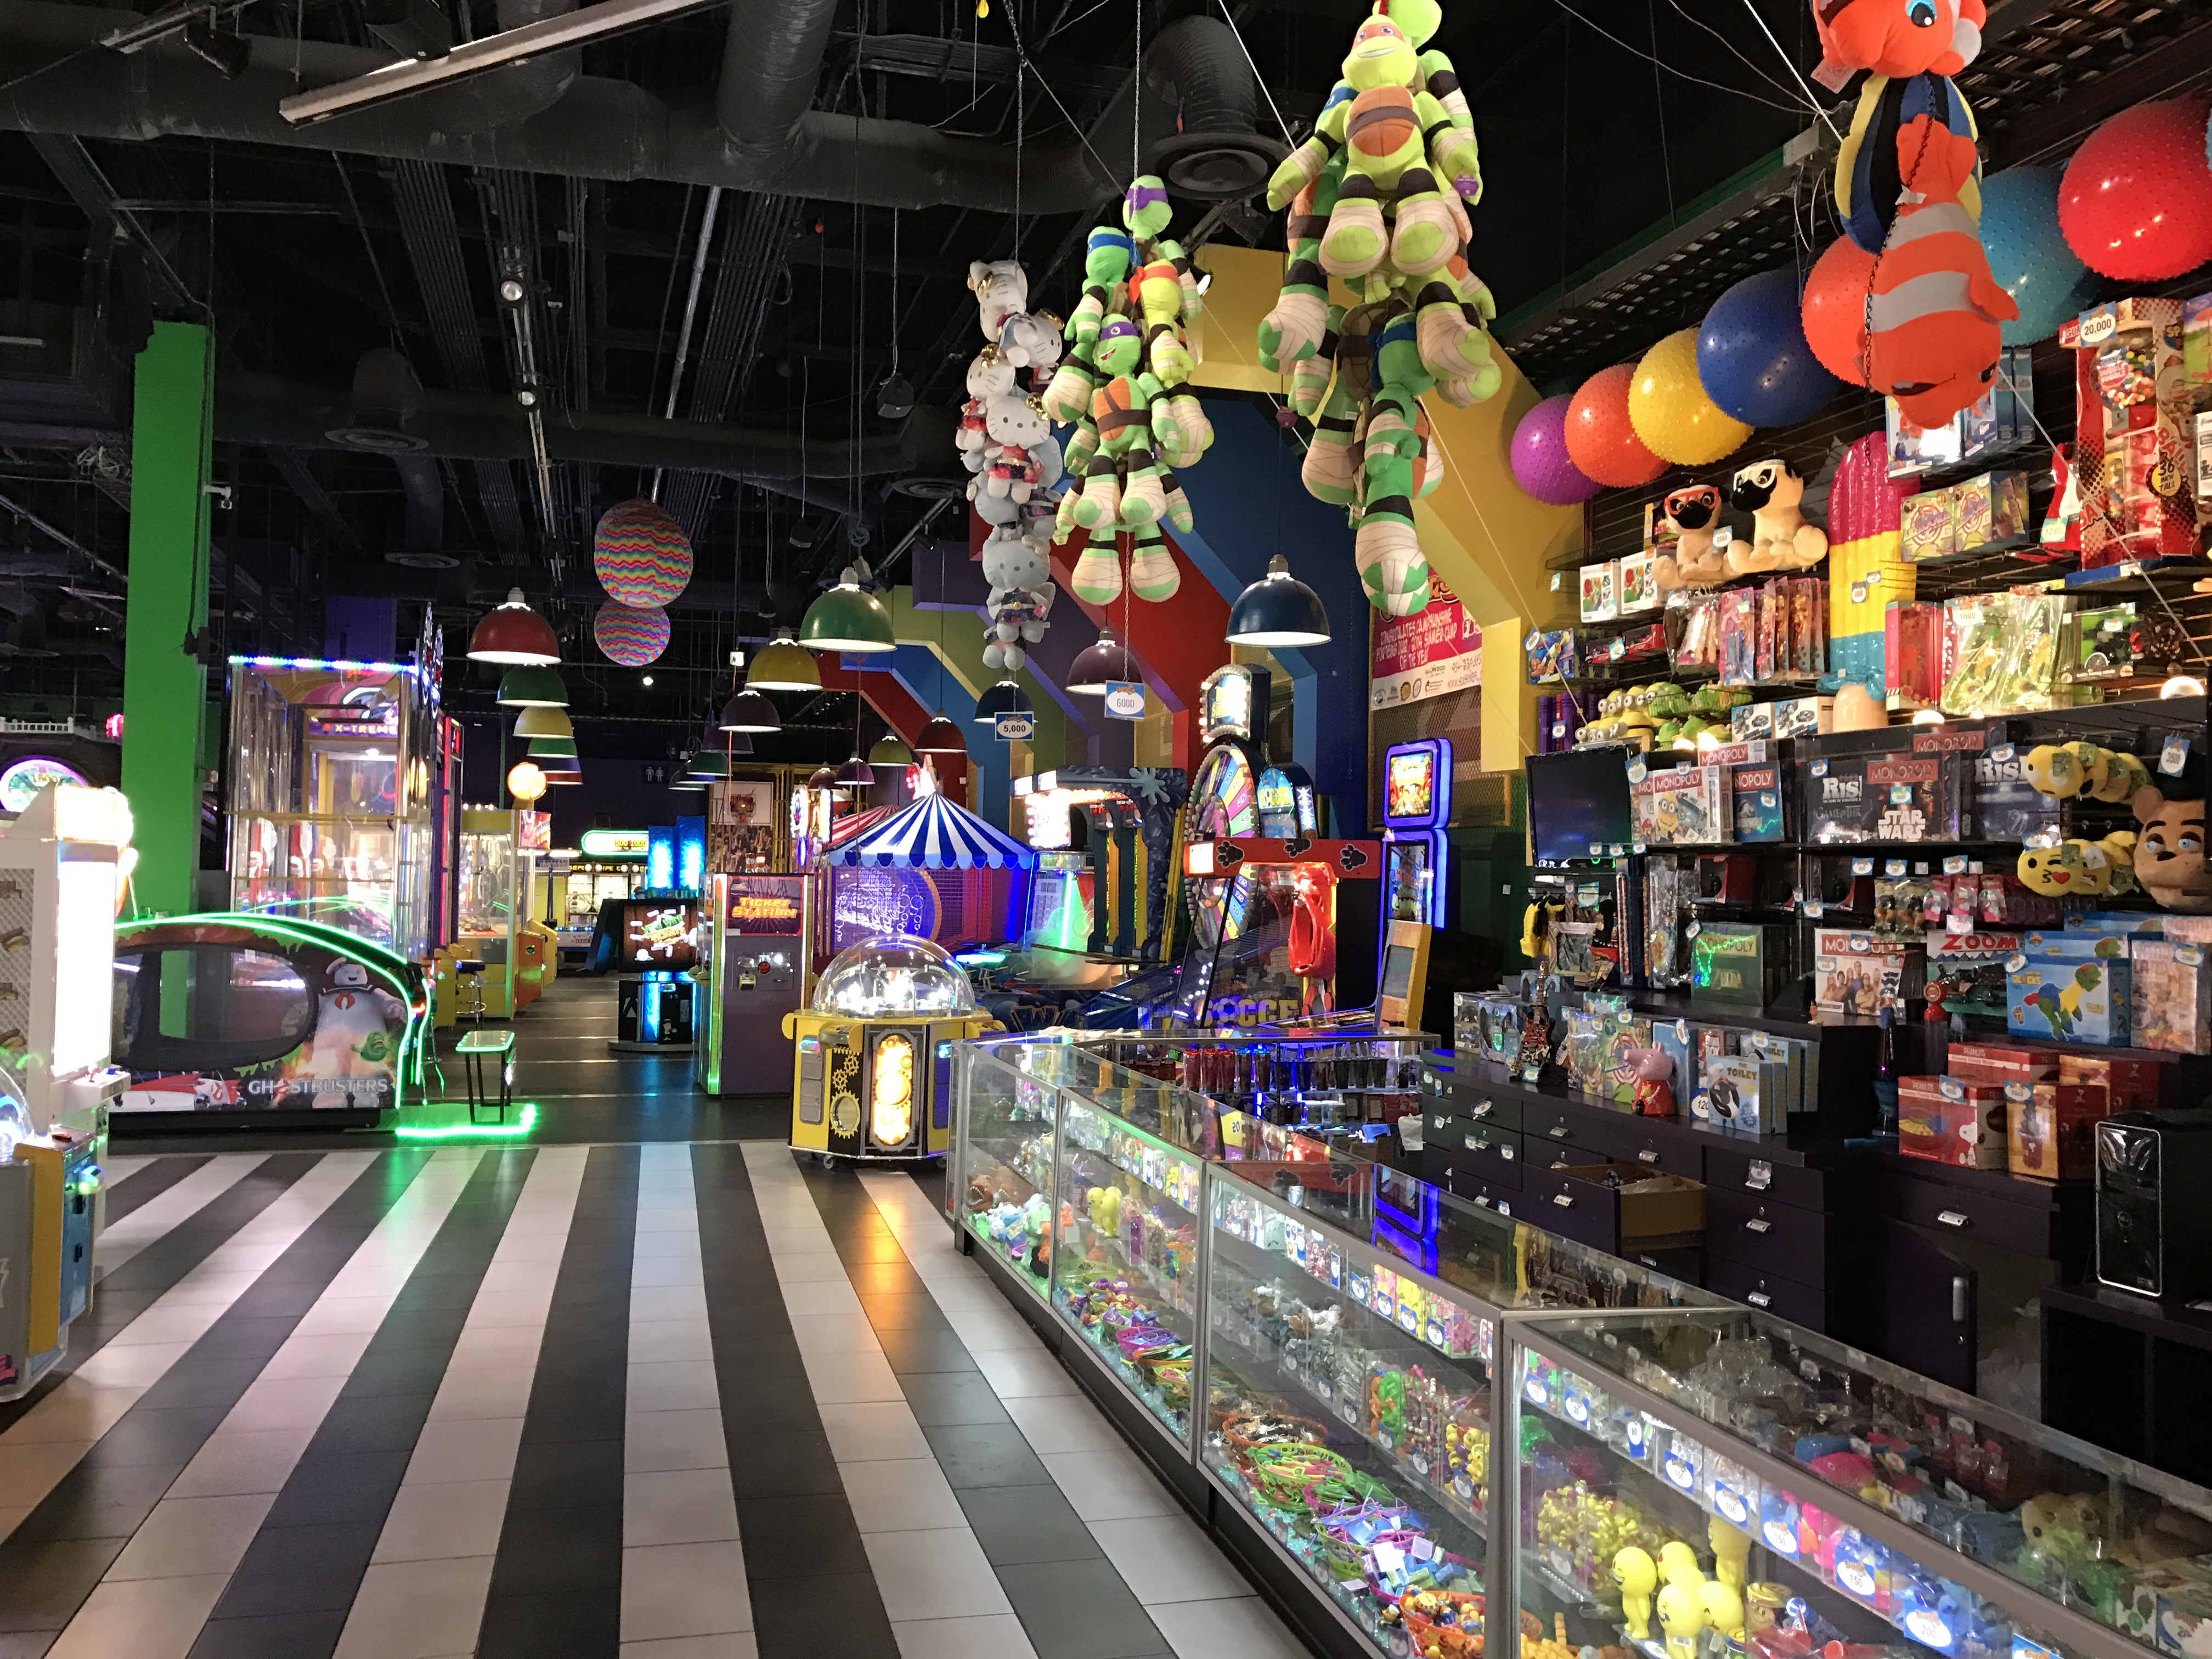 Best ideas about The Game Room Store . Save or Pin Play Video Games Simulators & Attractions Now.